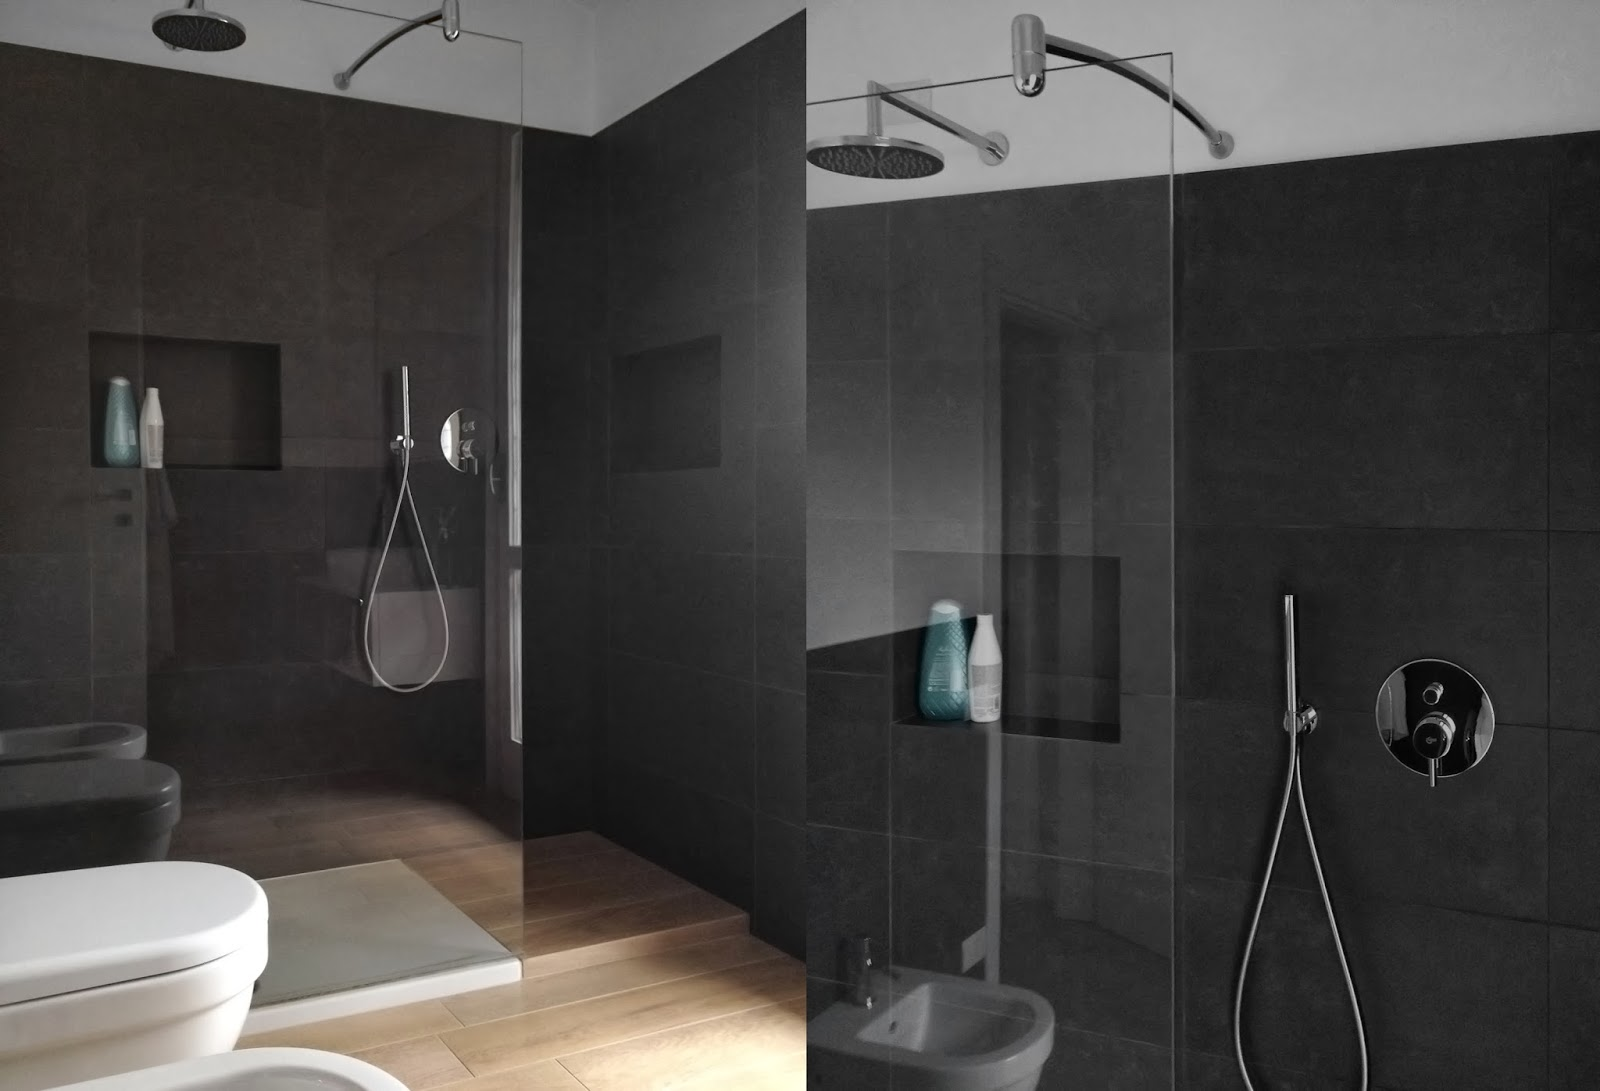 Details of us home spa step by step - Bagni con pavimento in legno ...